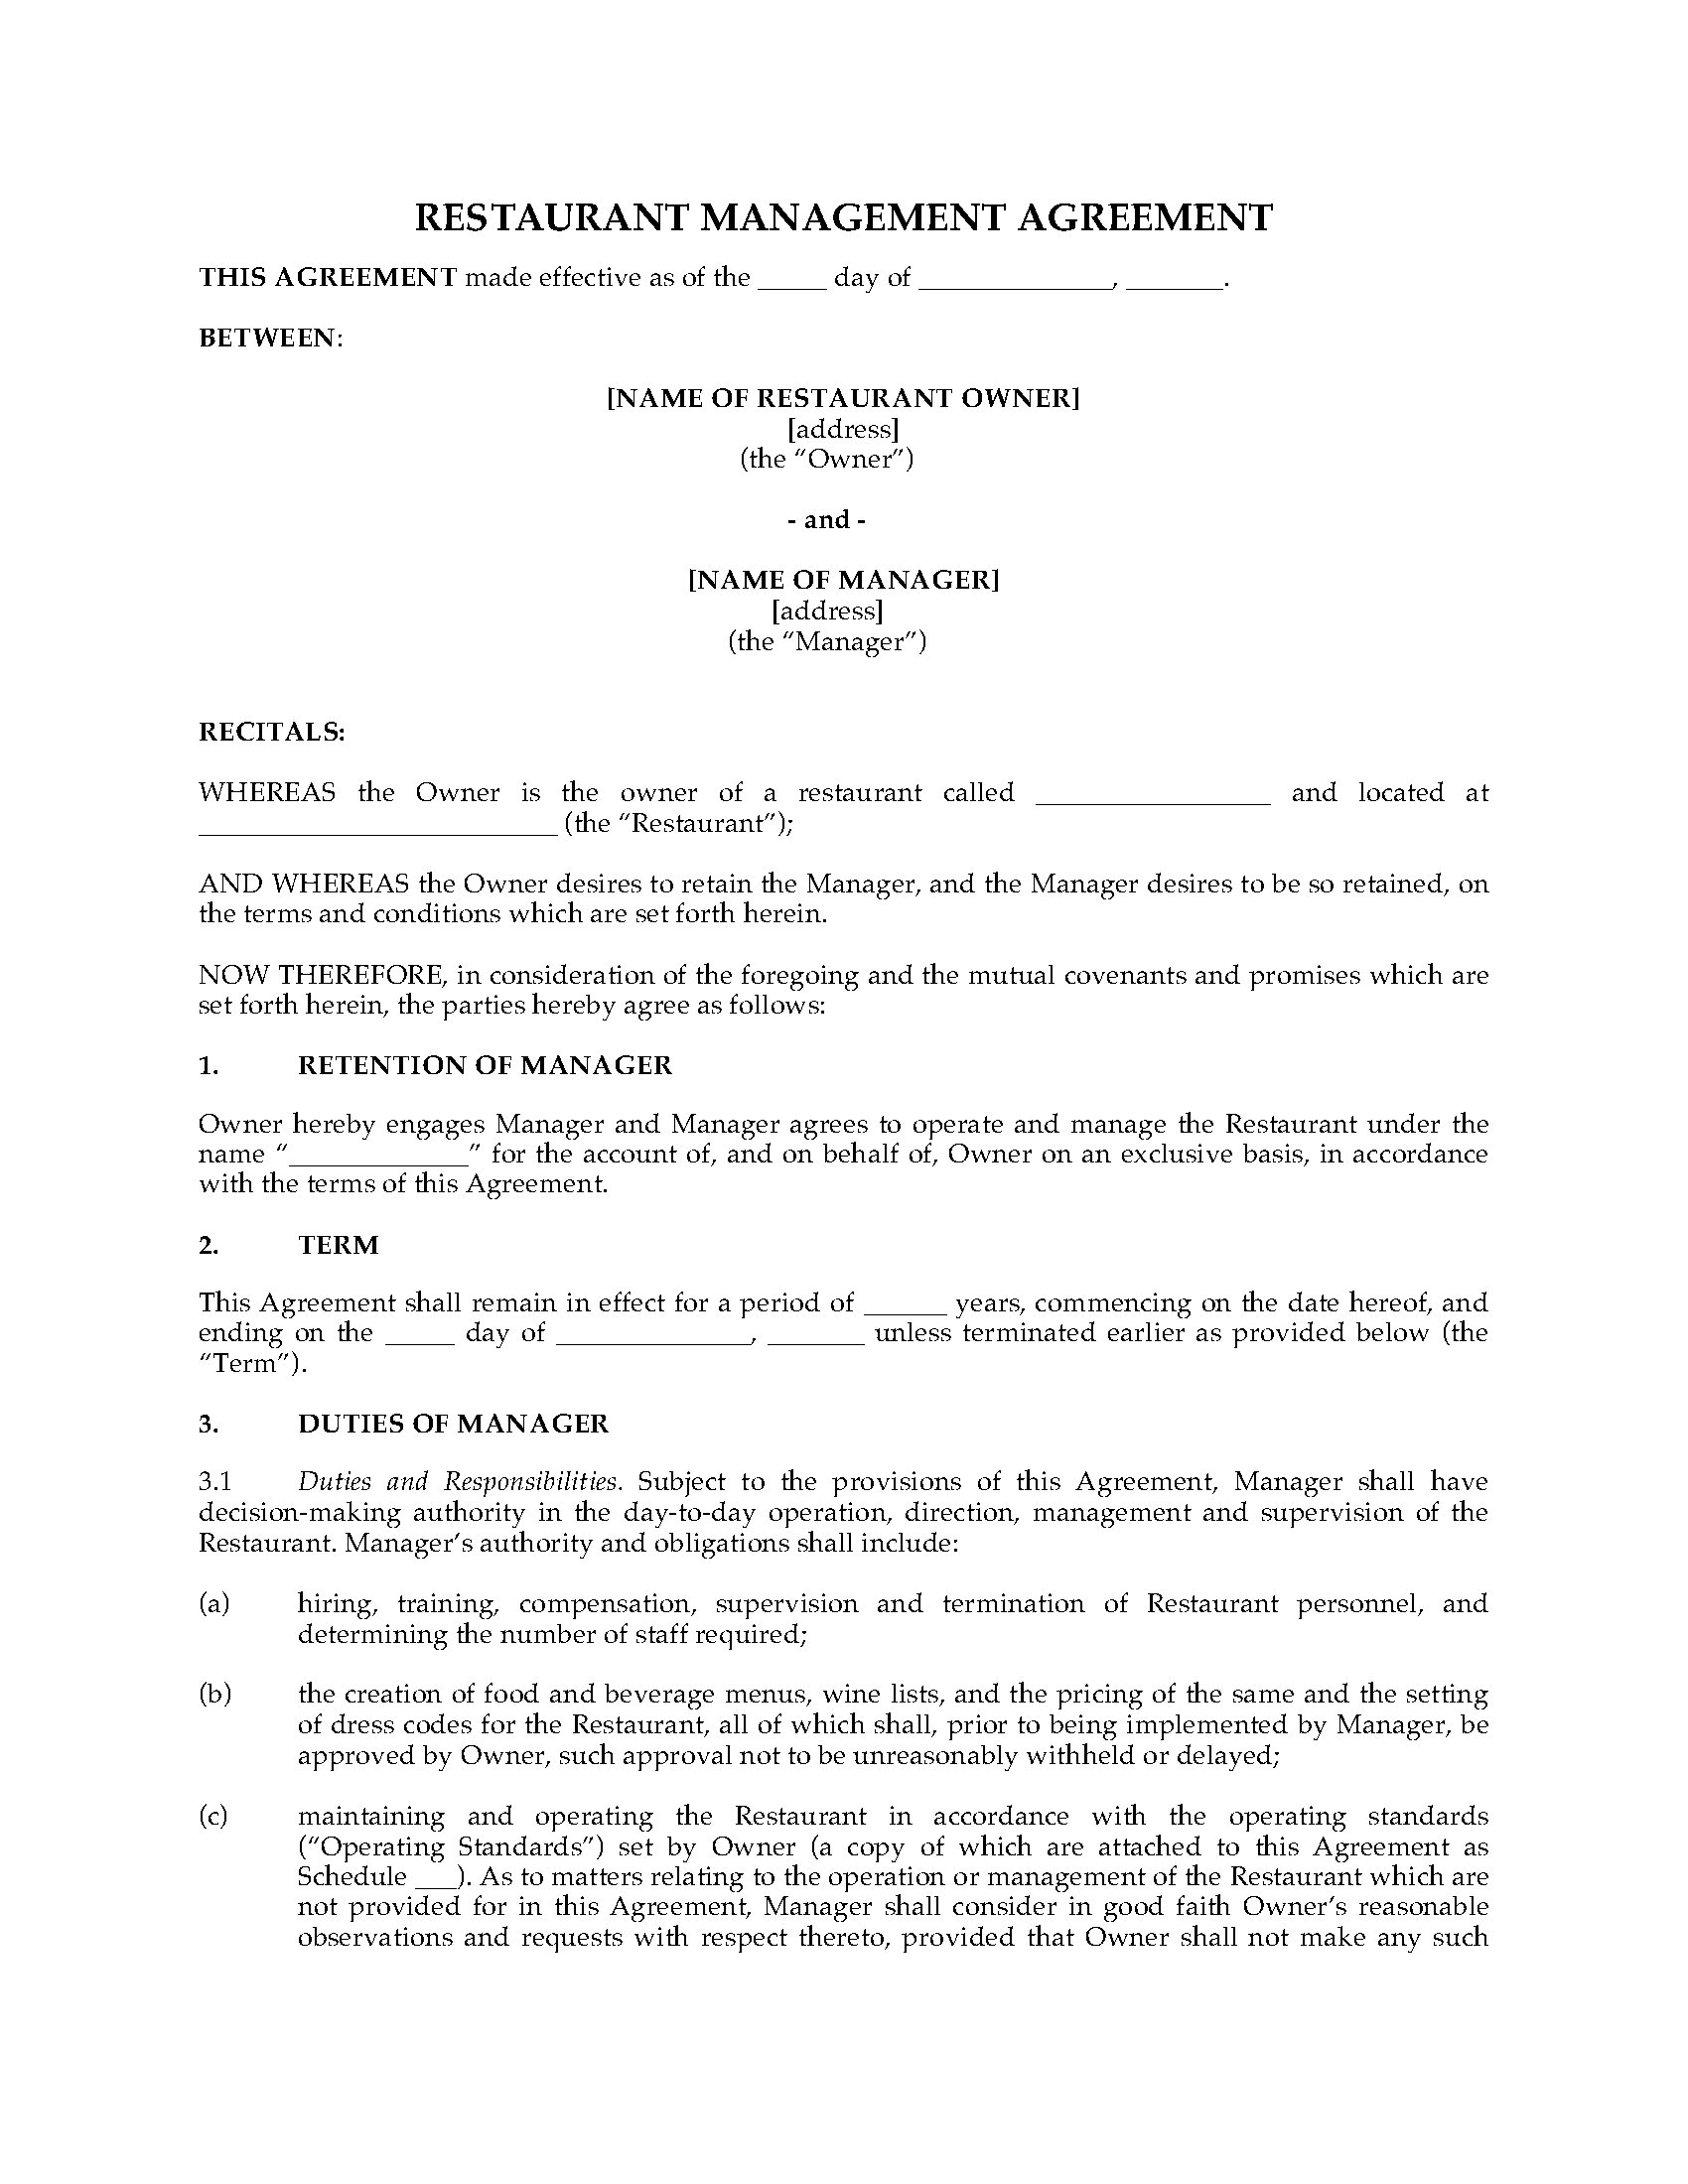 Restaurant management agreement legal forms and business templates picture of restaurant management agreement picture of restaurant management agreement platinumwayz